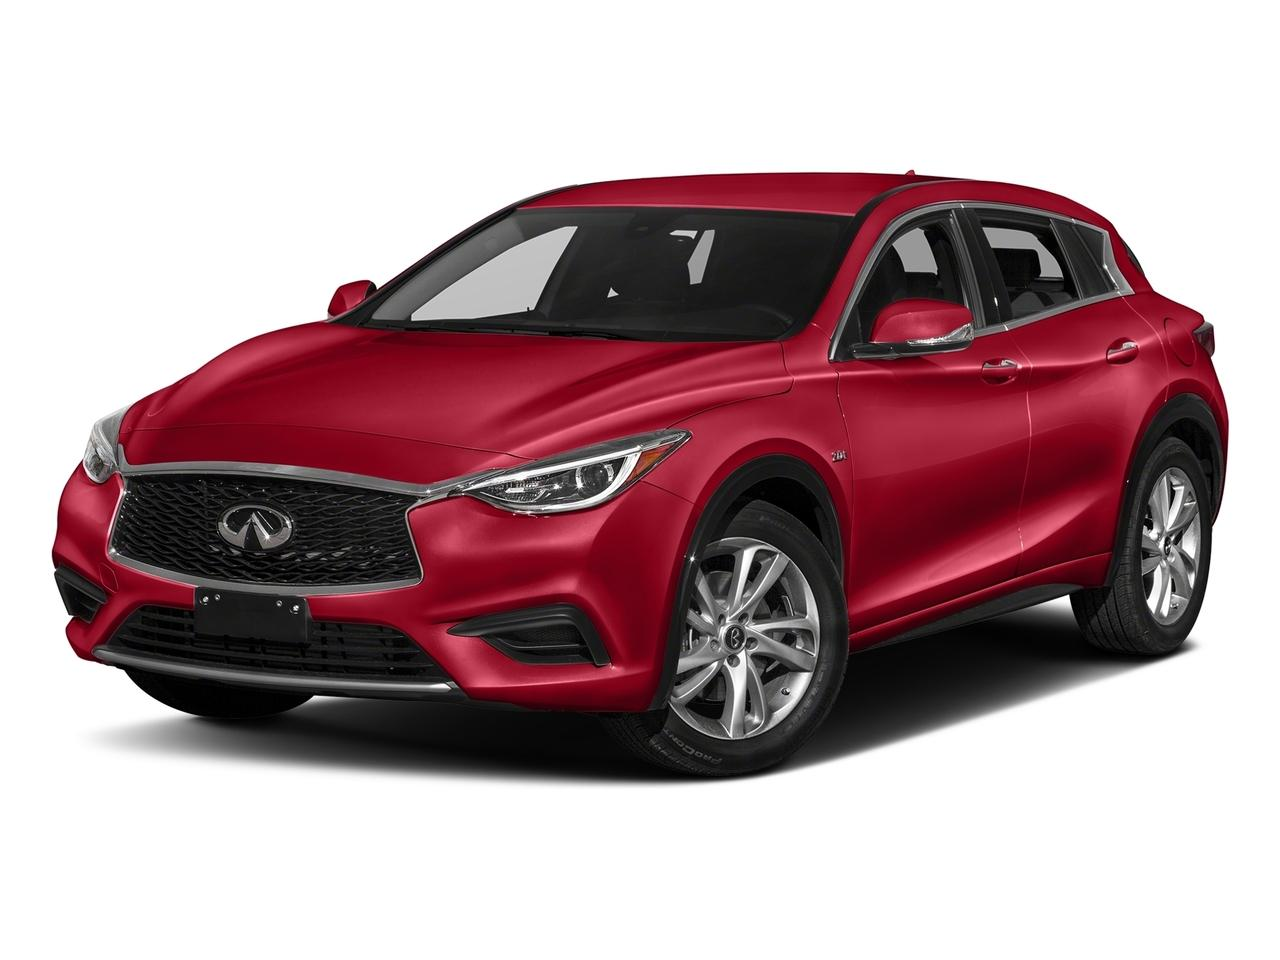 2017 INFINITI QX30 Vehicle Photo in San Antonio, TX 78230